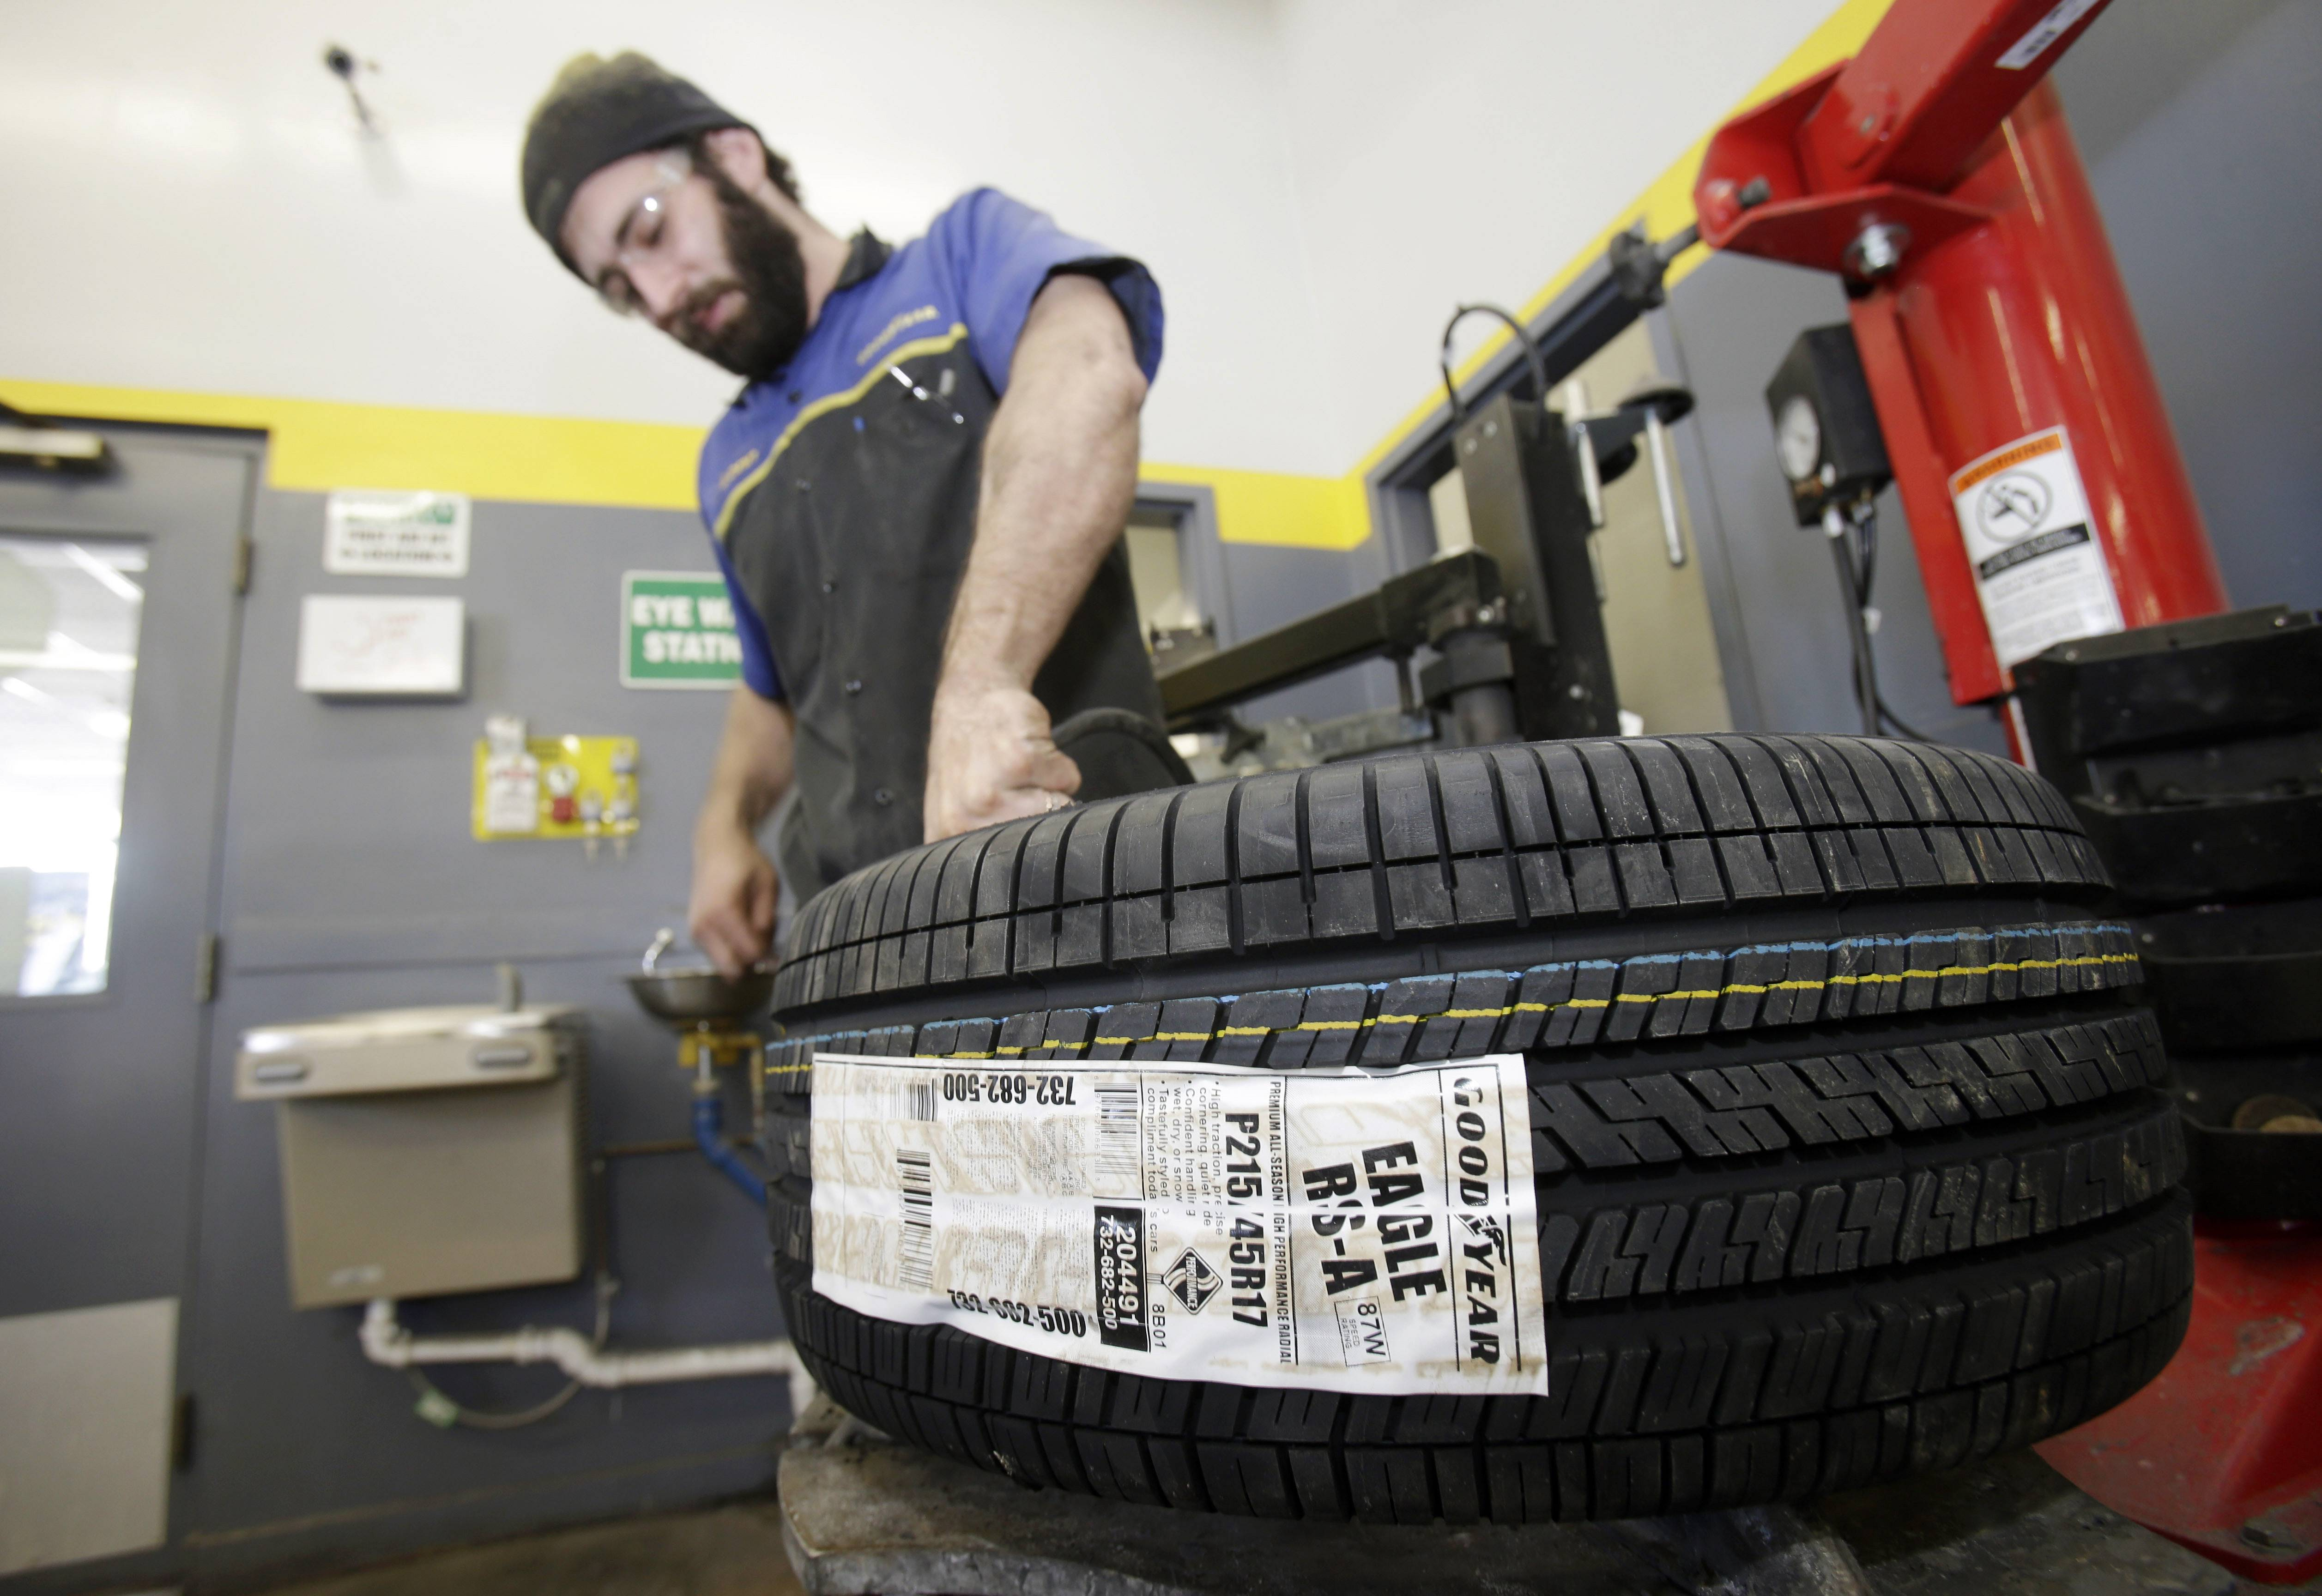 Goodyear reported a $58 million loss for the first quarter largely due to Venezuelan currency charges. The loss was compounded by the extreme winter weather across the U.S. that hurt tire sales, the company said.